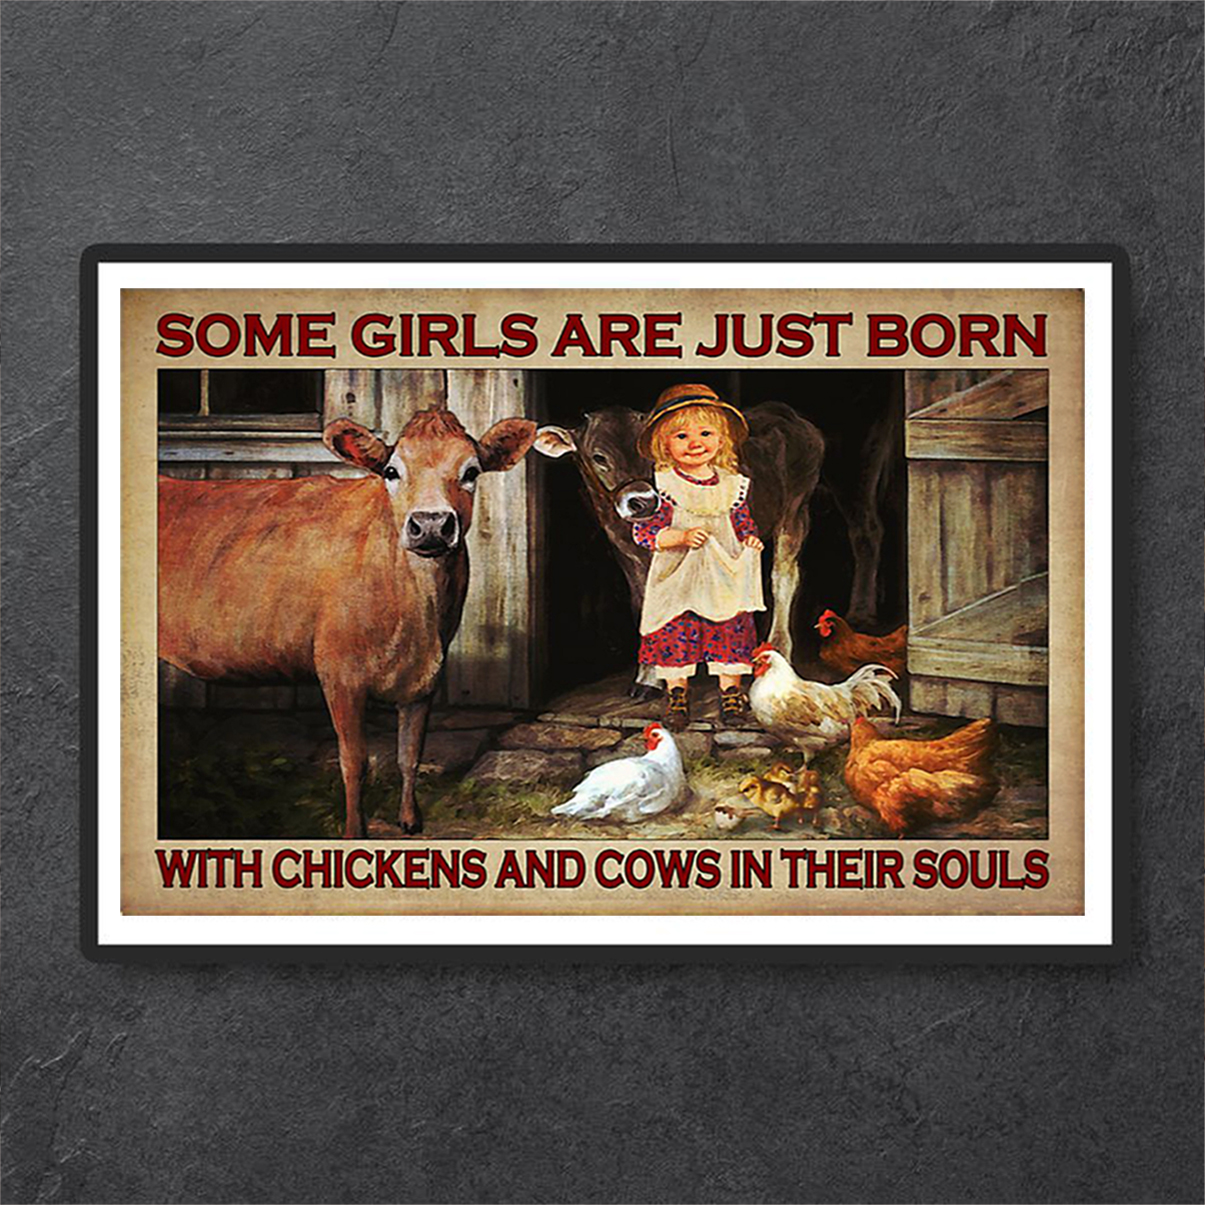 Some girls are just born with chickens and cows in their souls poster A3